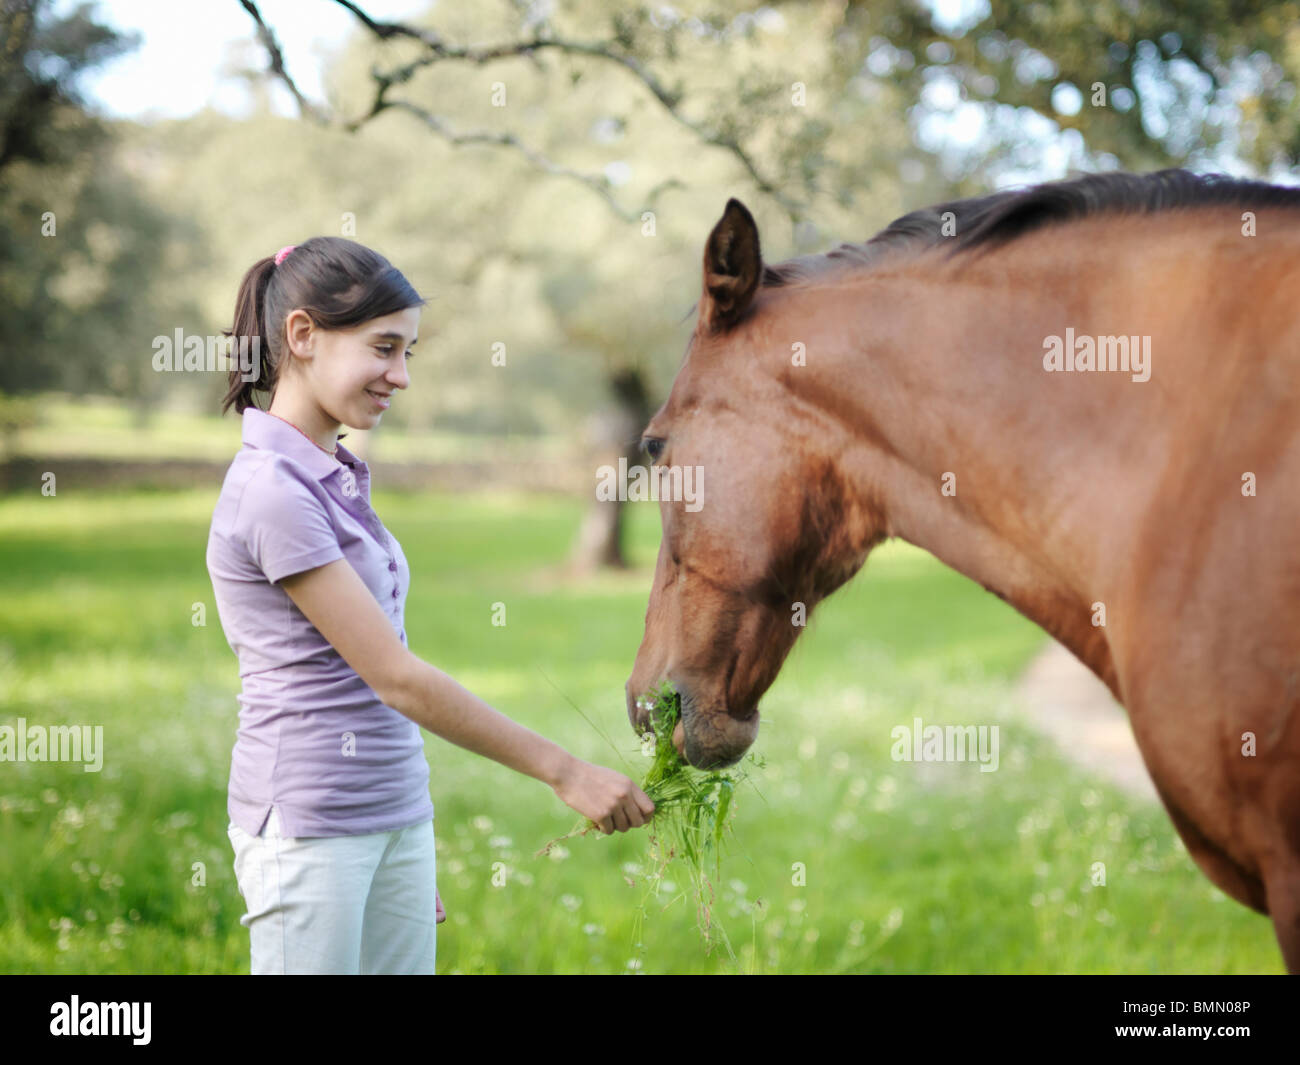 Girl giving grass to horse - Stock Image